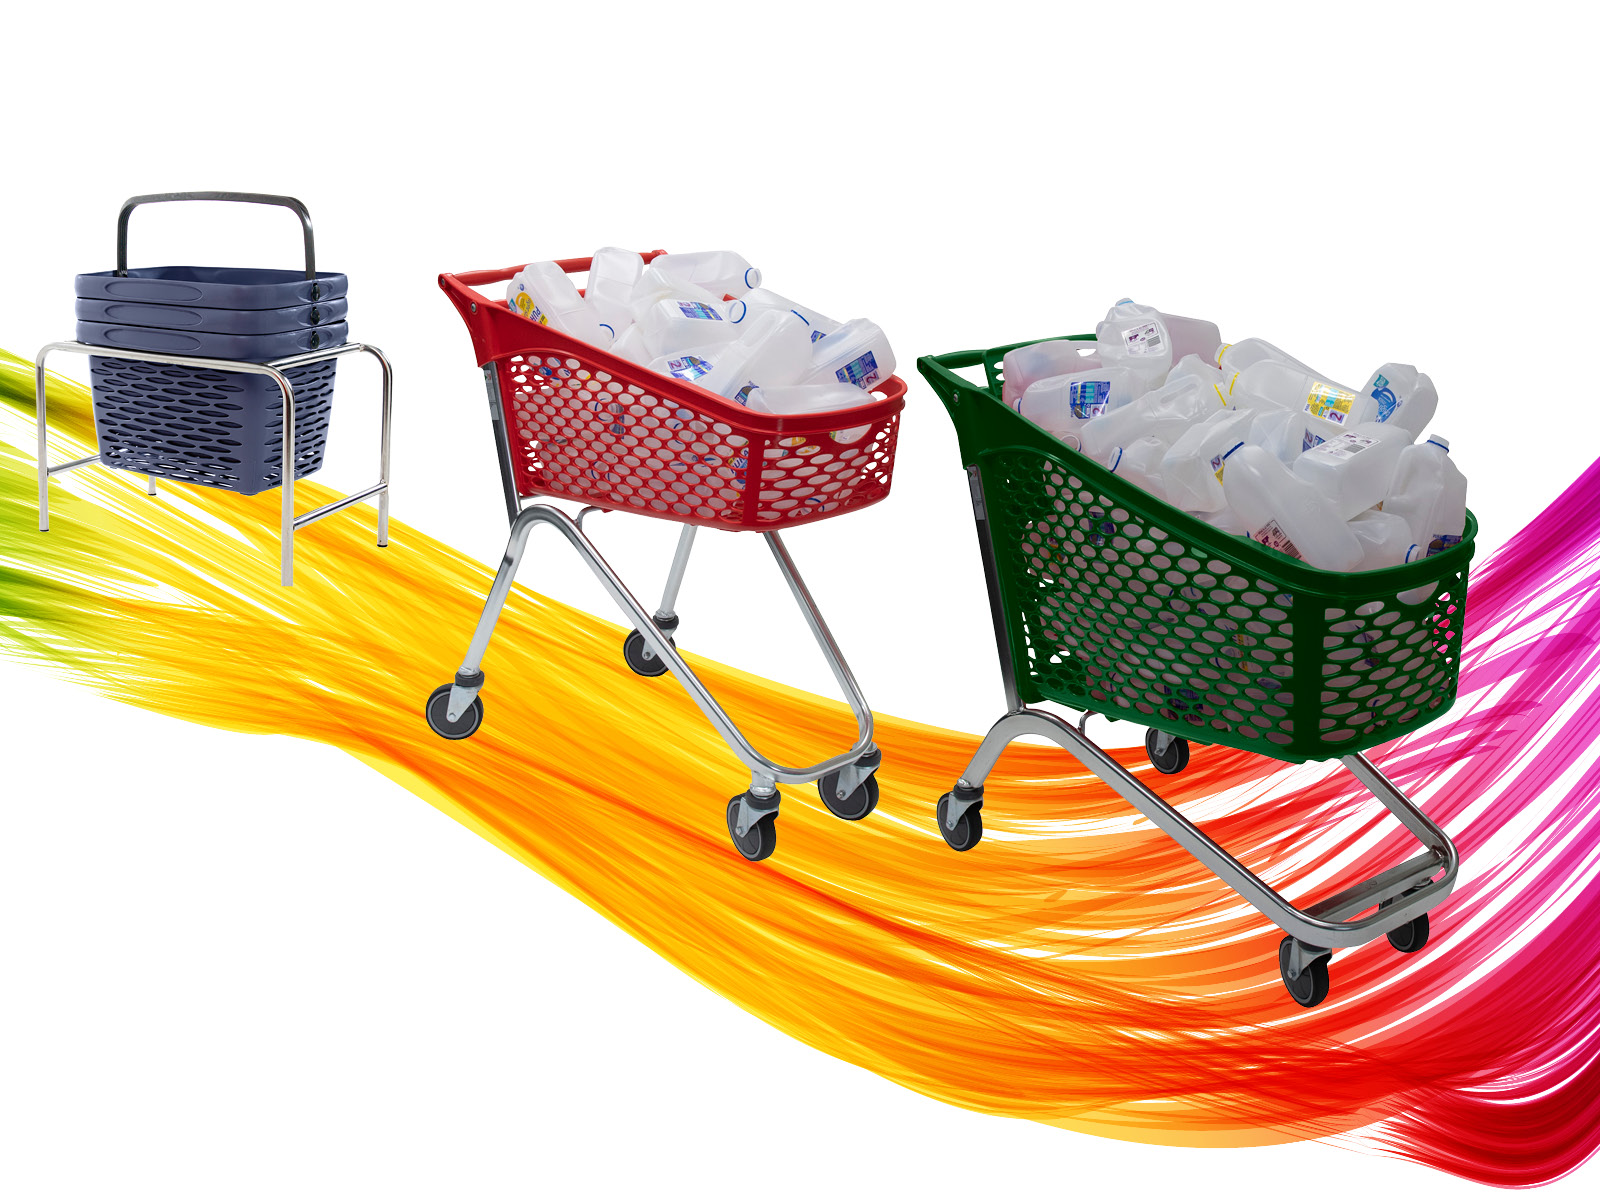 Supercart-Hybrid-Shopping-Trolley-Range.jpg